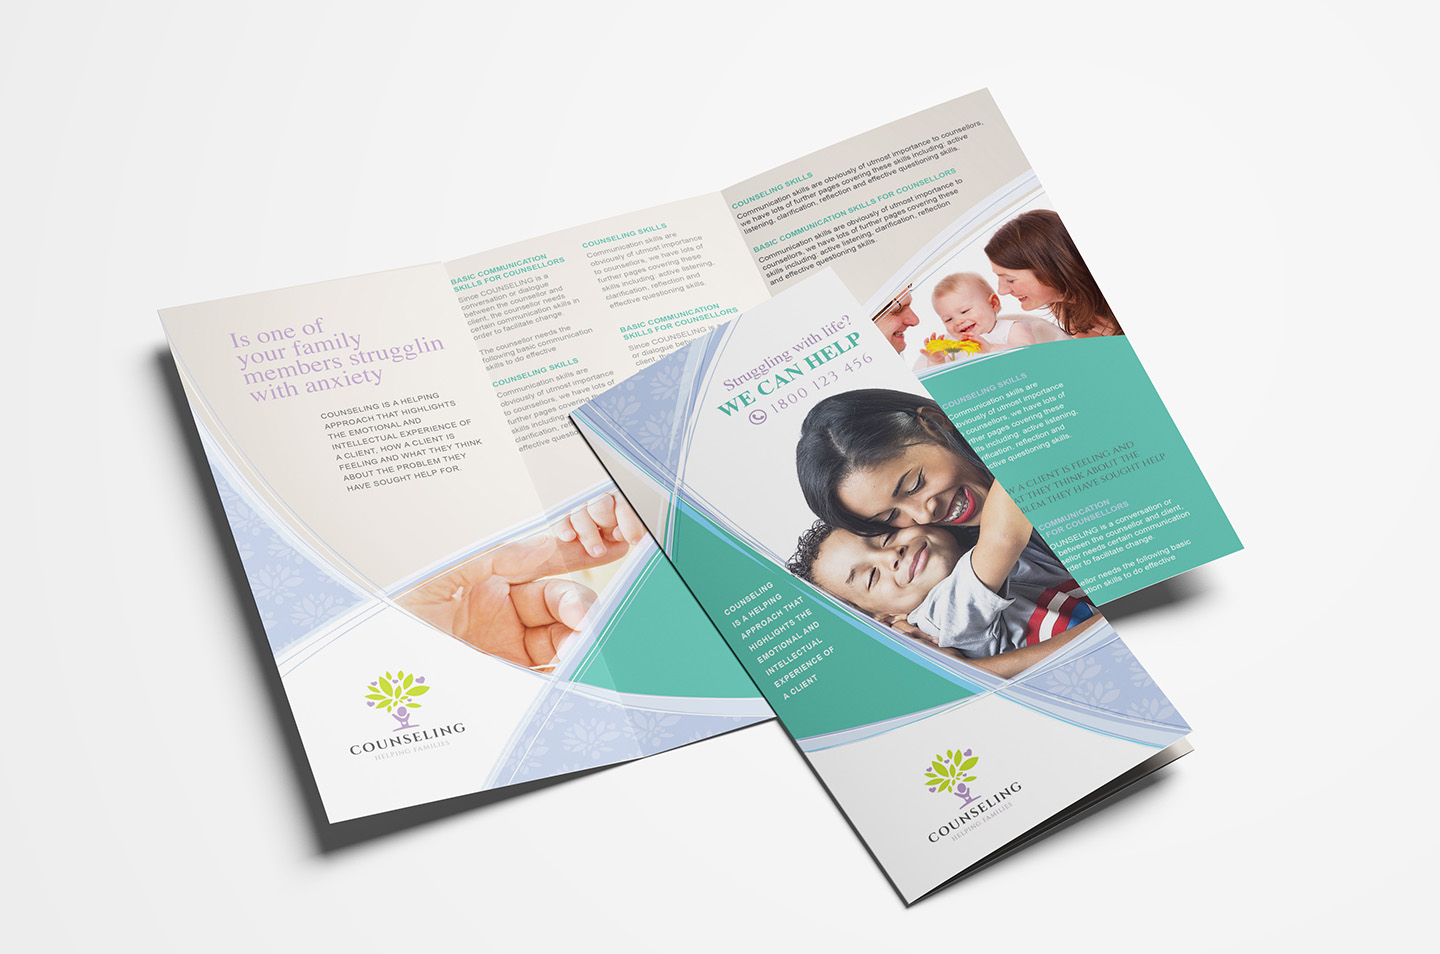 Counselling Service Trifold Brochure Template